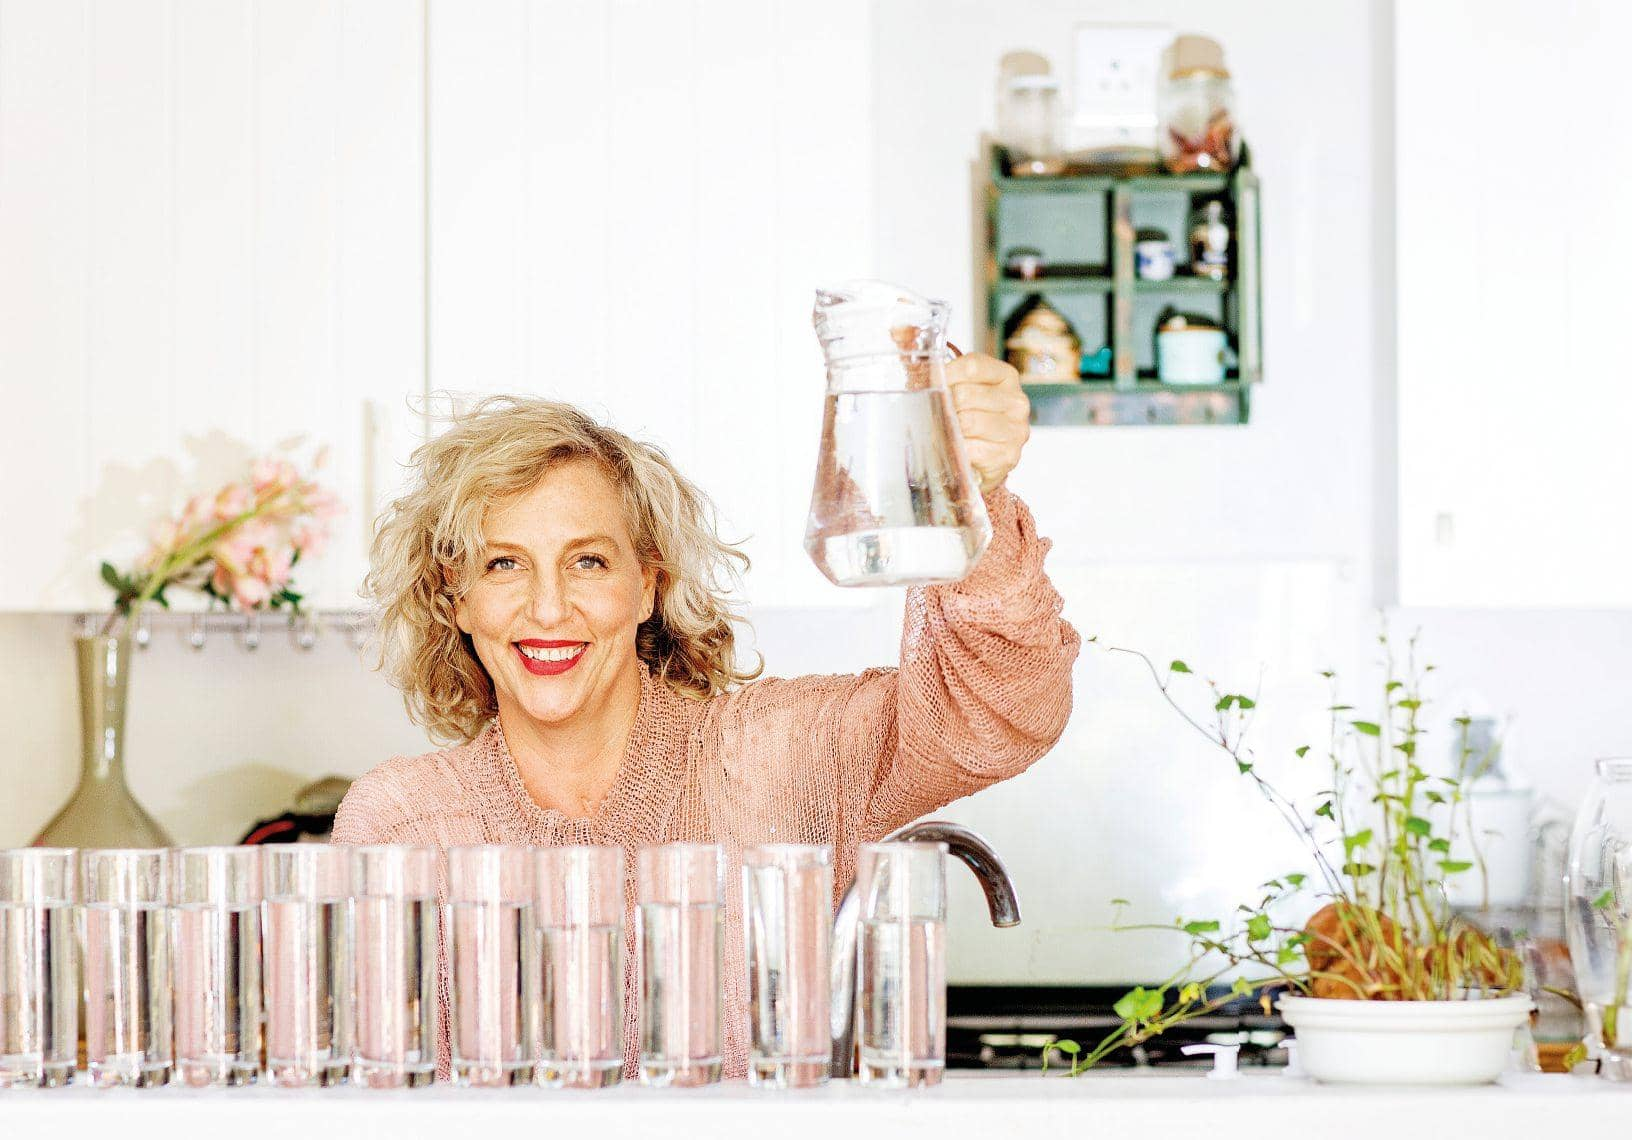 'I DID A 10-DAY WATER FAST'